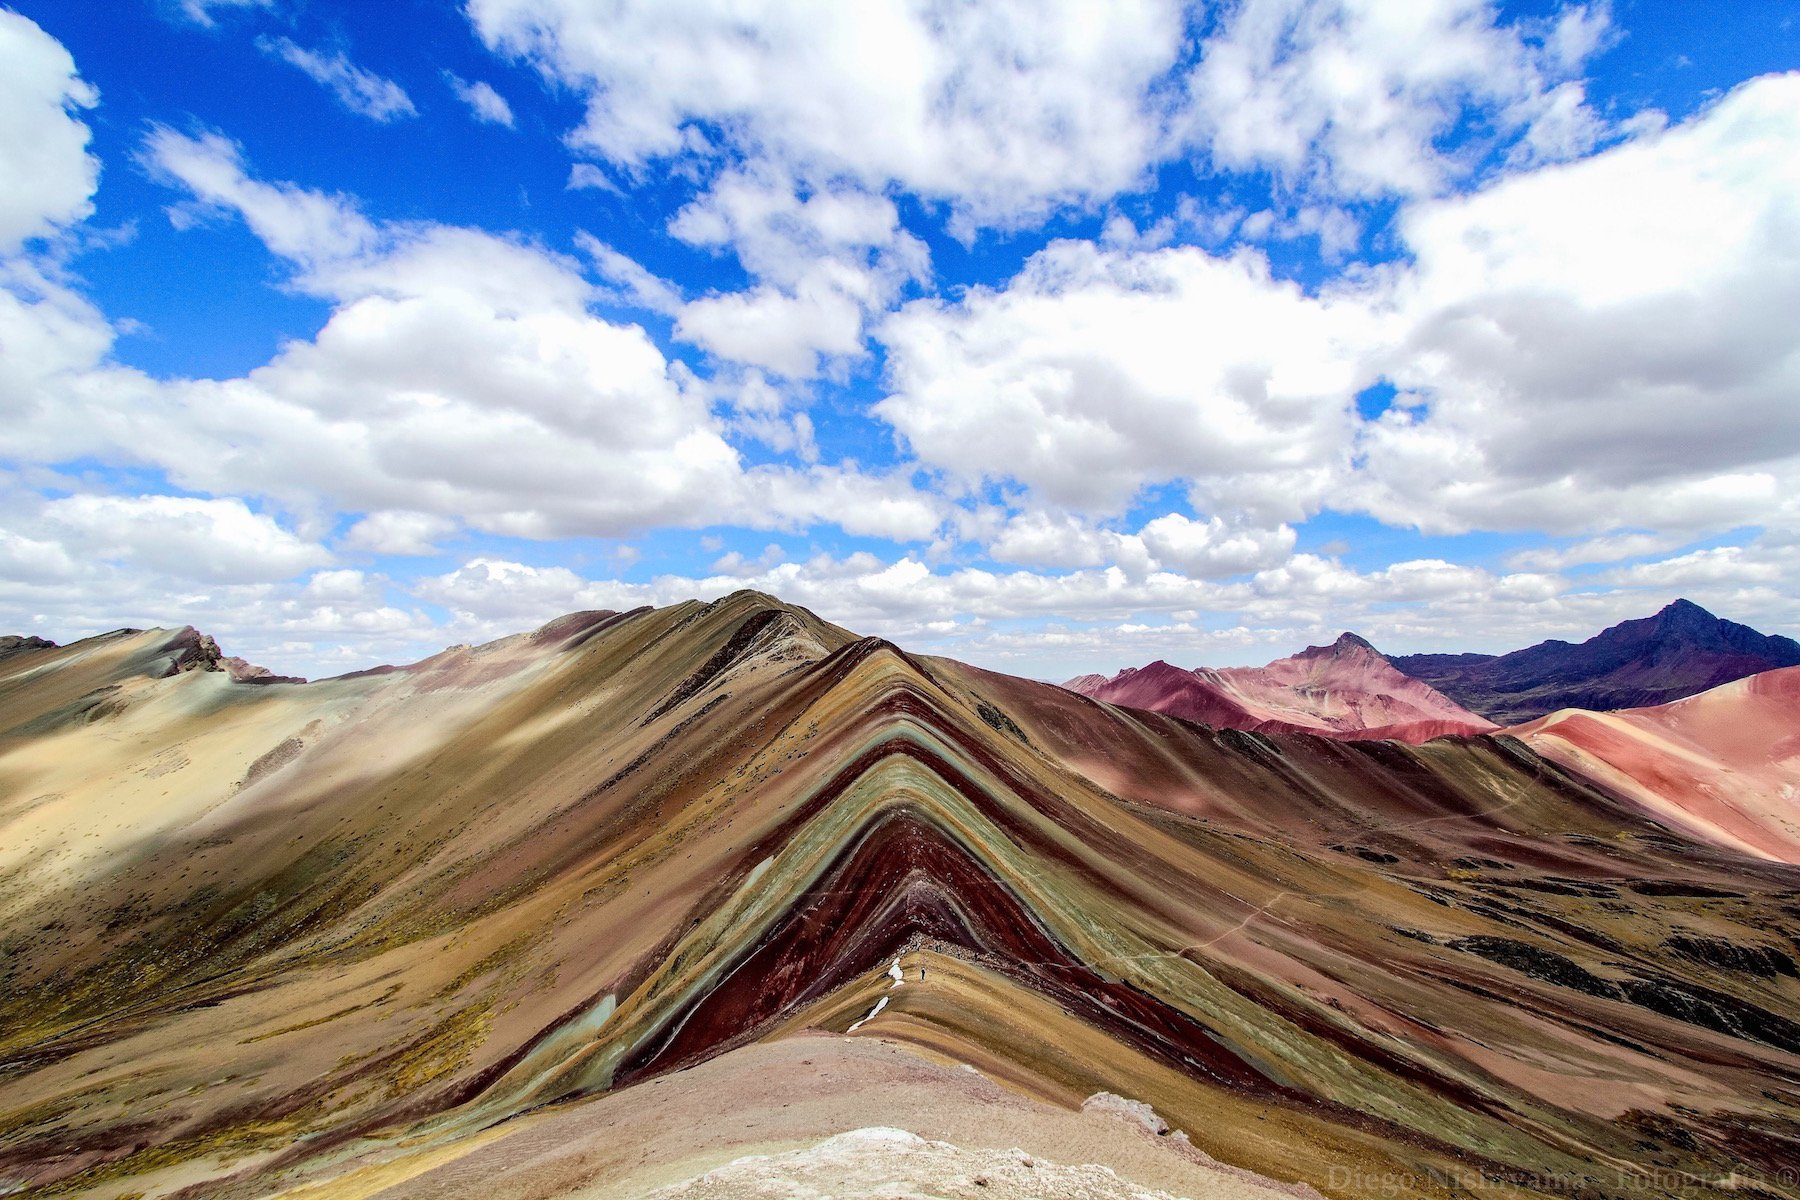 rainbow mountain trek to machu picchu